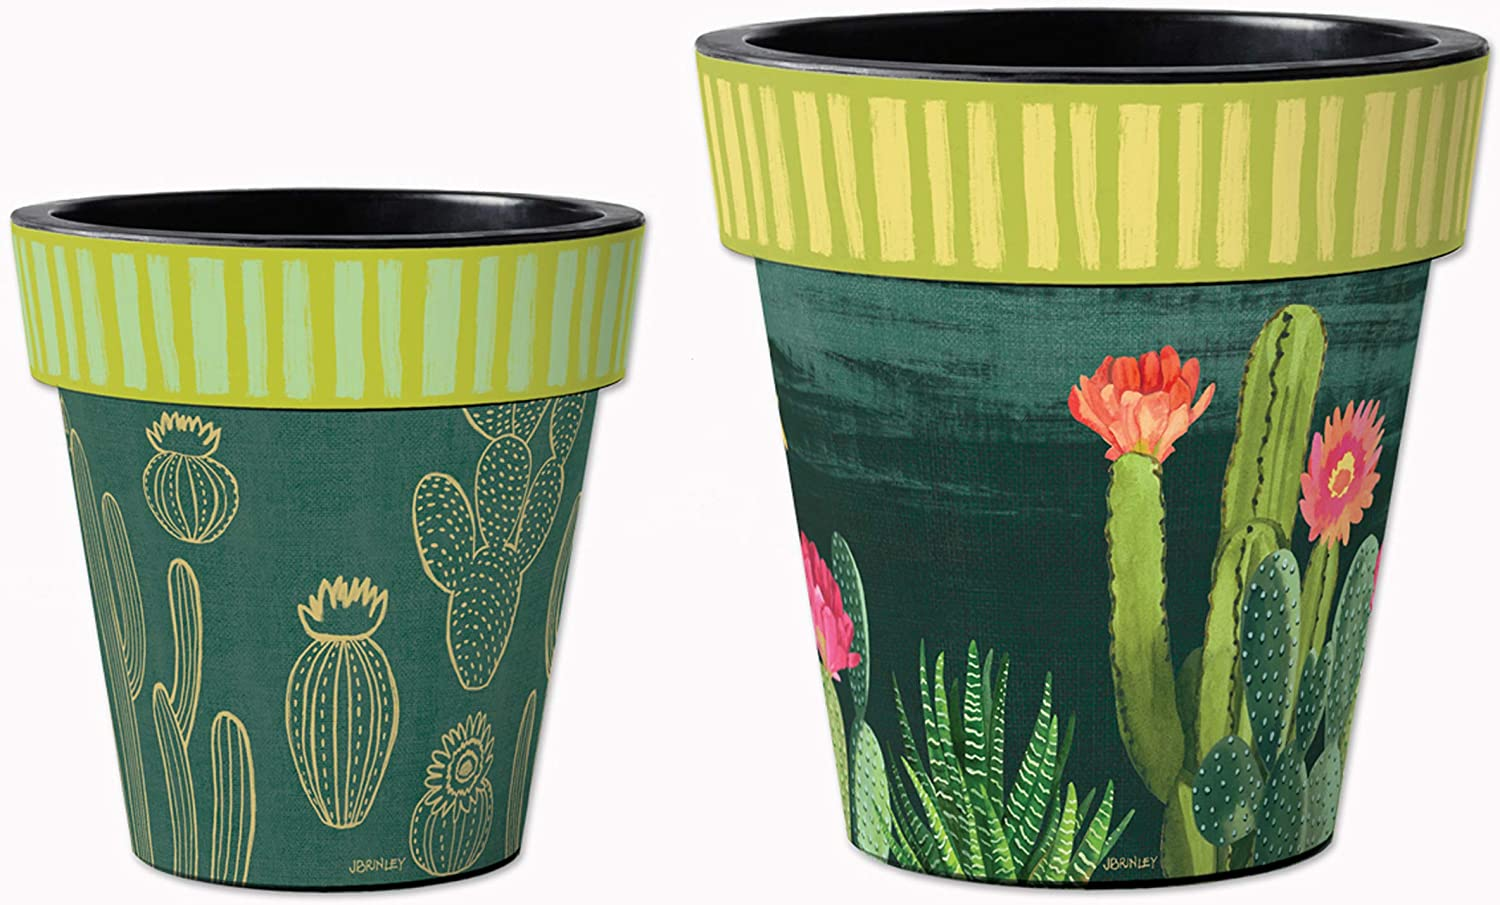 Studio M Night Cactus Art Planters Trendy Southwest Decorative Pots, Fade-Resistant Container for Outdoors or Indoors - Set of 2, Printed in The USA, 12 and 15 Inch Diameter